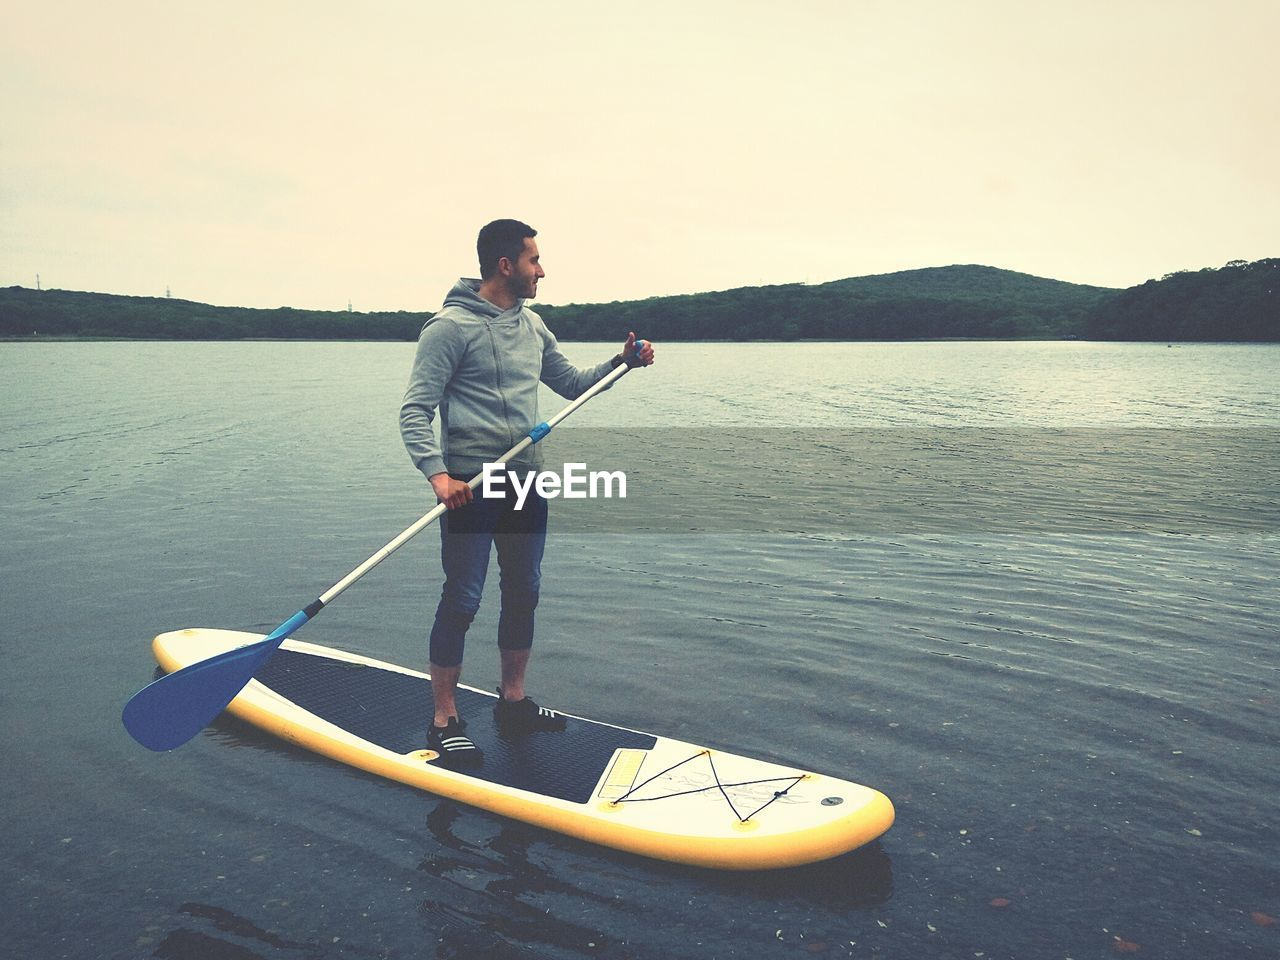 real people, one person, lifestyles, water, leisure activity, nature, standing, casual clothing, oar, outdoors, beauty in nature, day, full length, vacations, scenics, mountain, men, nautical vessel, young adult, paddleboarding, sky, adult, people